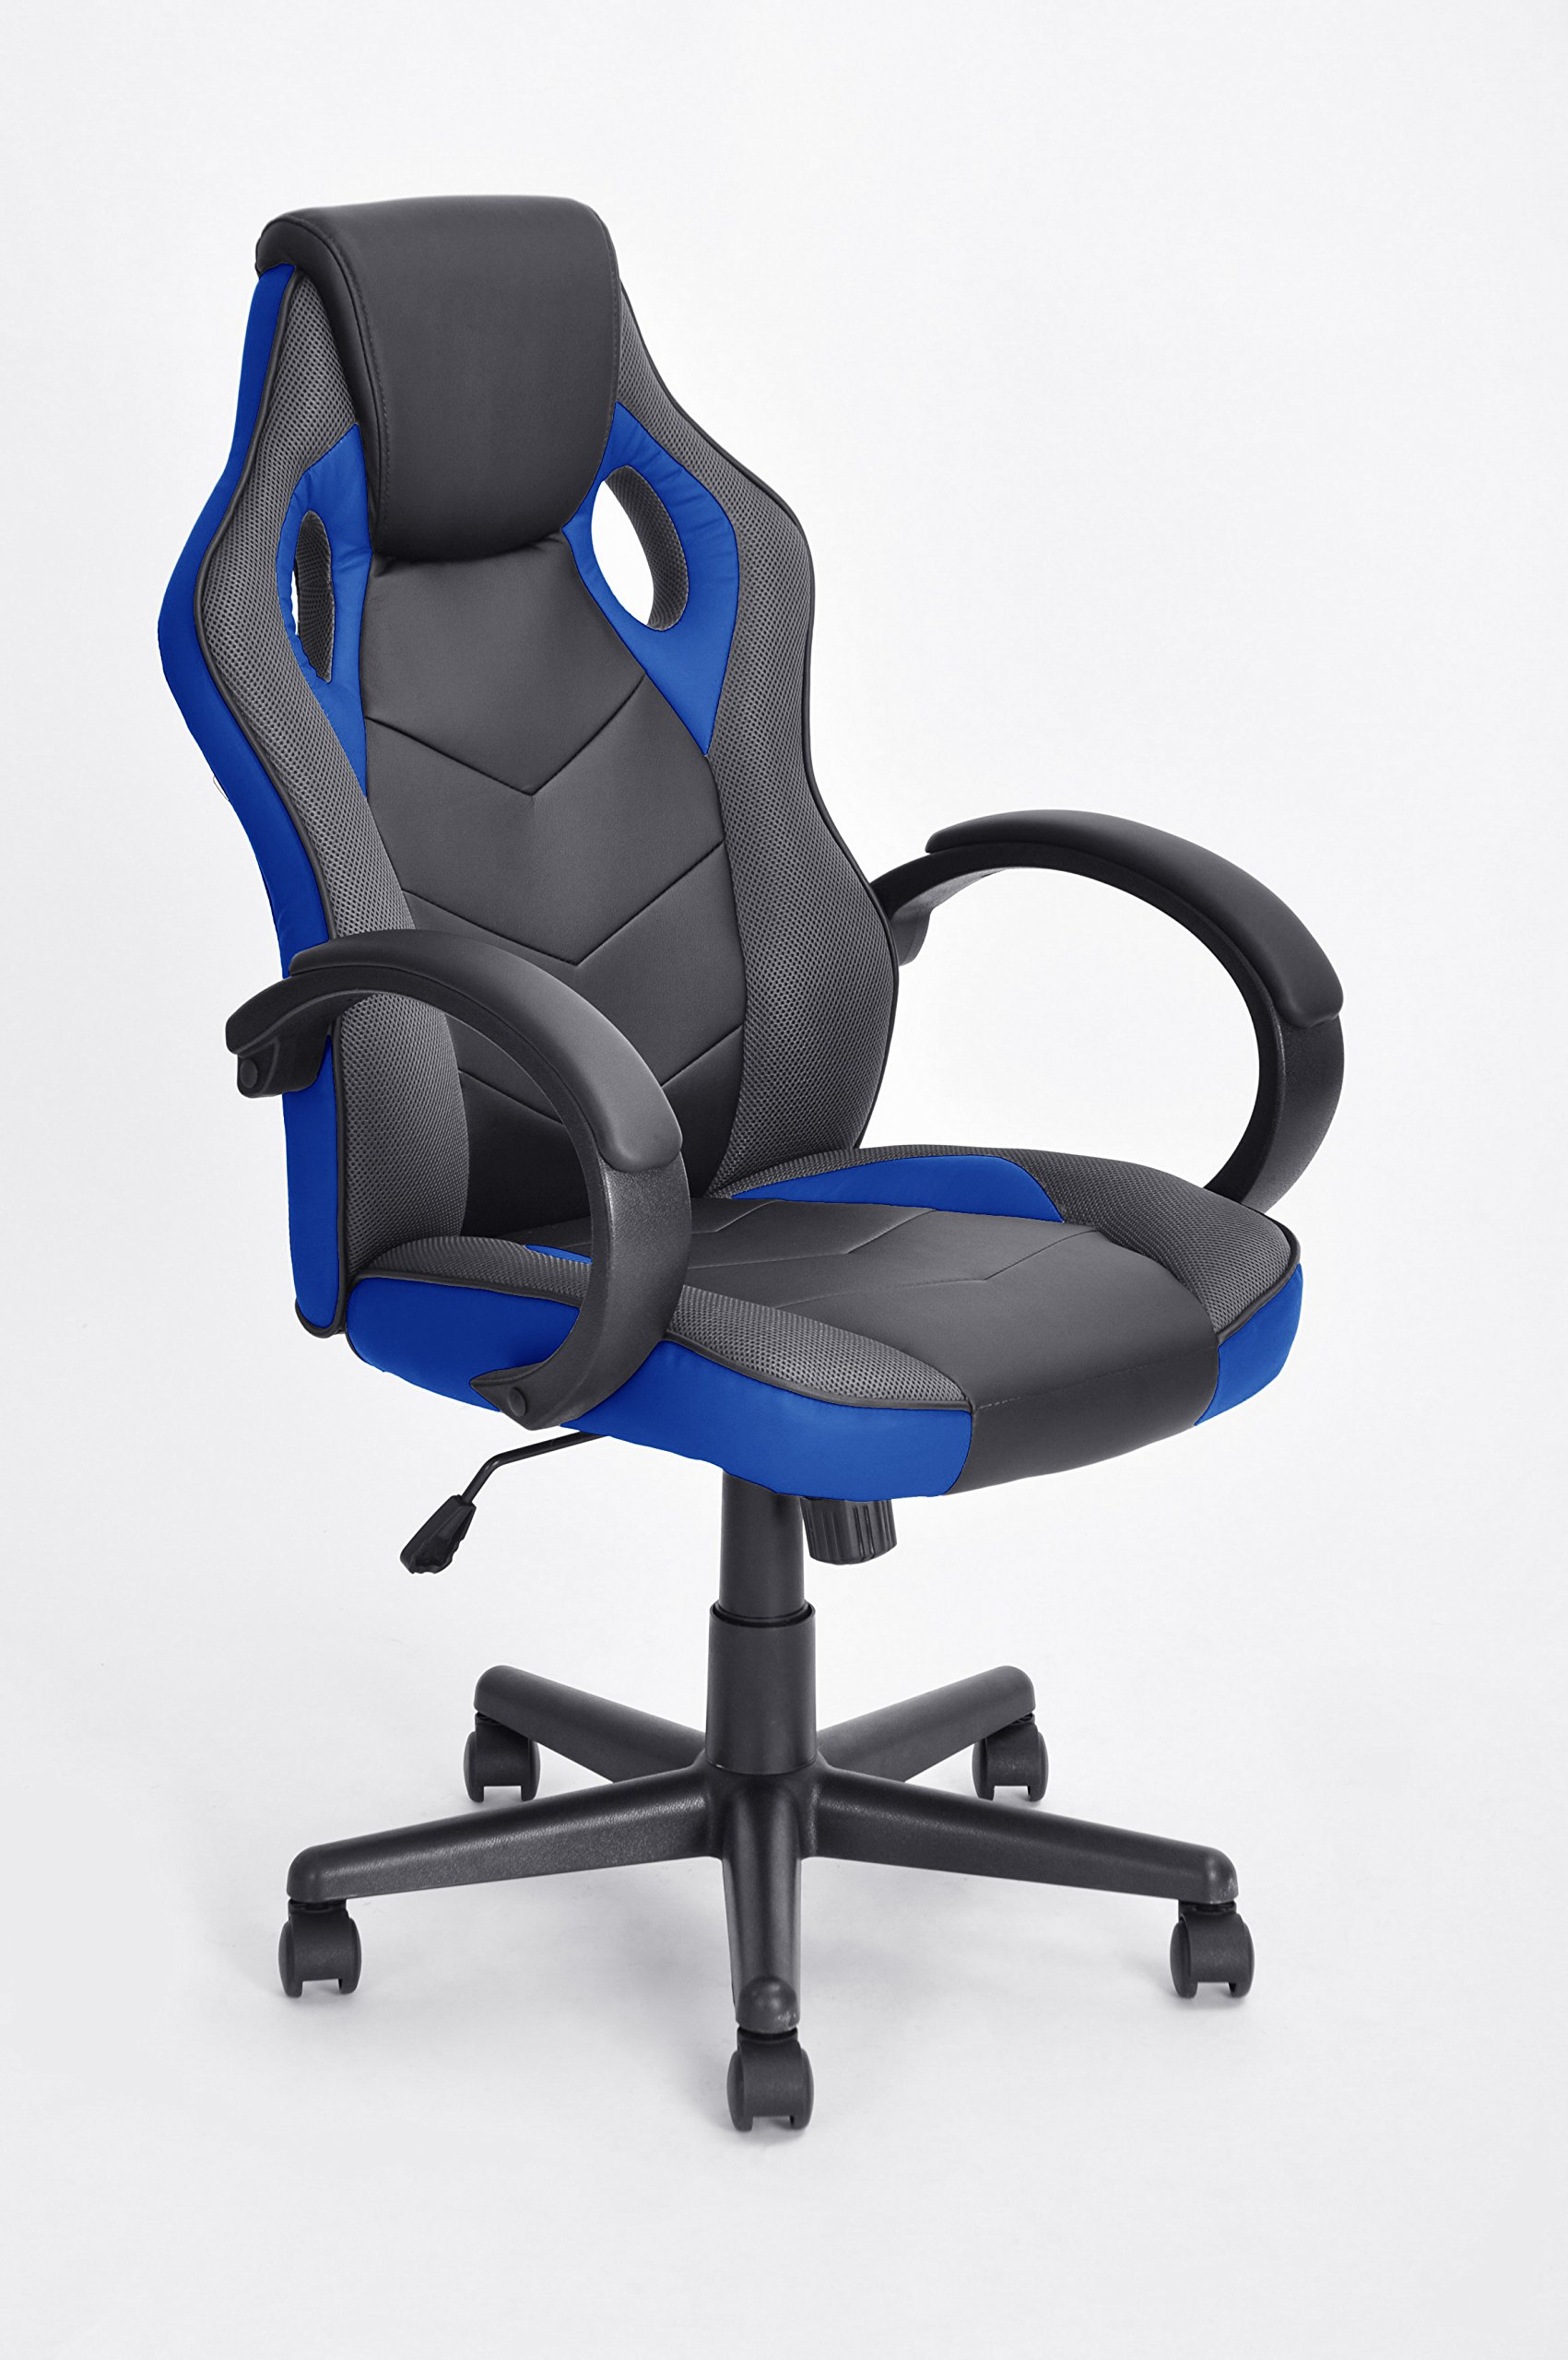 Executive Racing Style Office Chair PU Leather Swivel Computer Desk on blue race car desk chair, retro style office chair, racing computer chair, racing furniture, camaro racing car office chair, antique style office chair, audi racing office chair, gt omega pro racing office chair, sitting in a chair, racing seats, racing chair xbox one, western style office chair, car style office chair, racing style swivel chair,